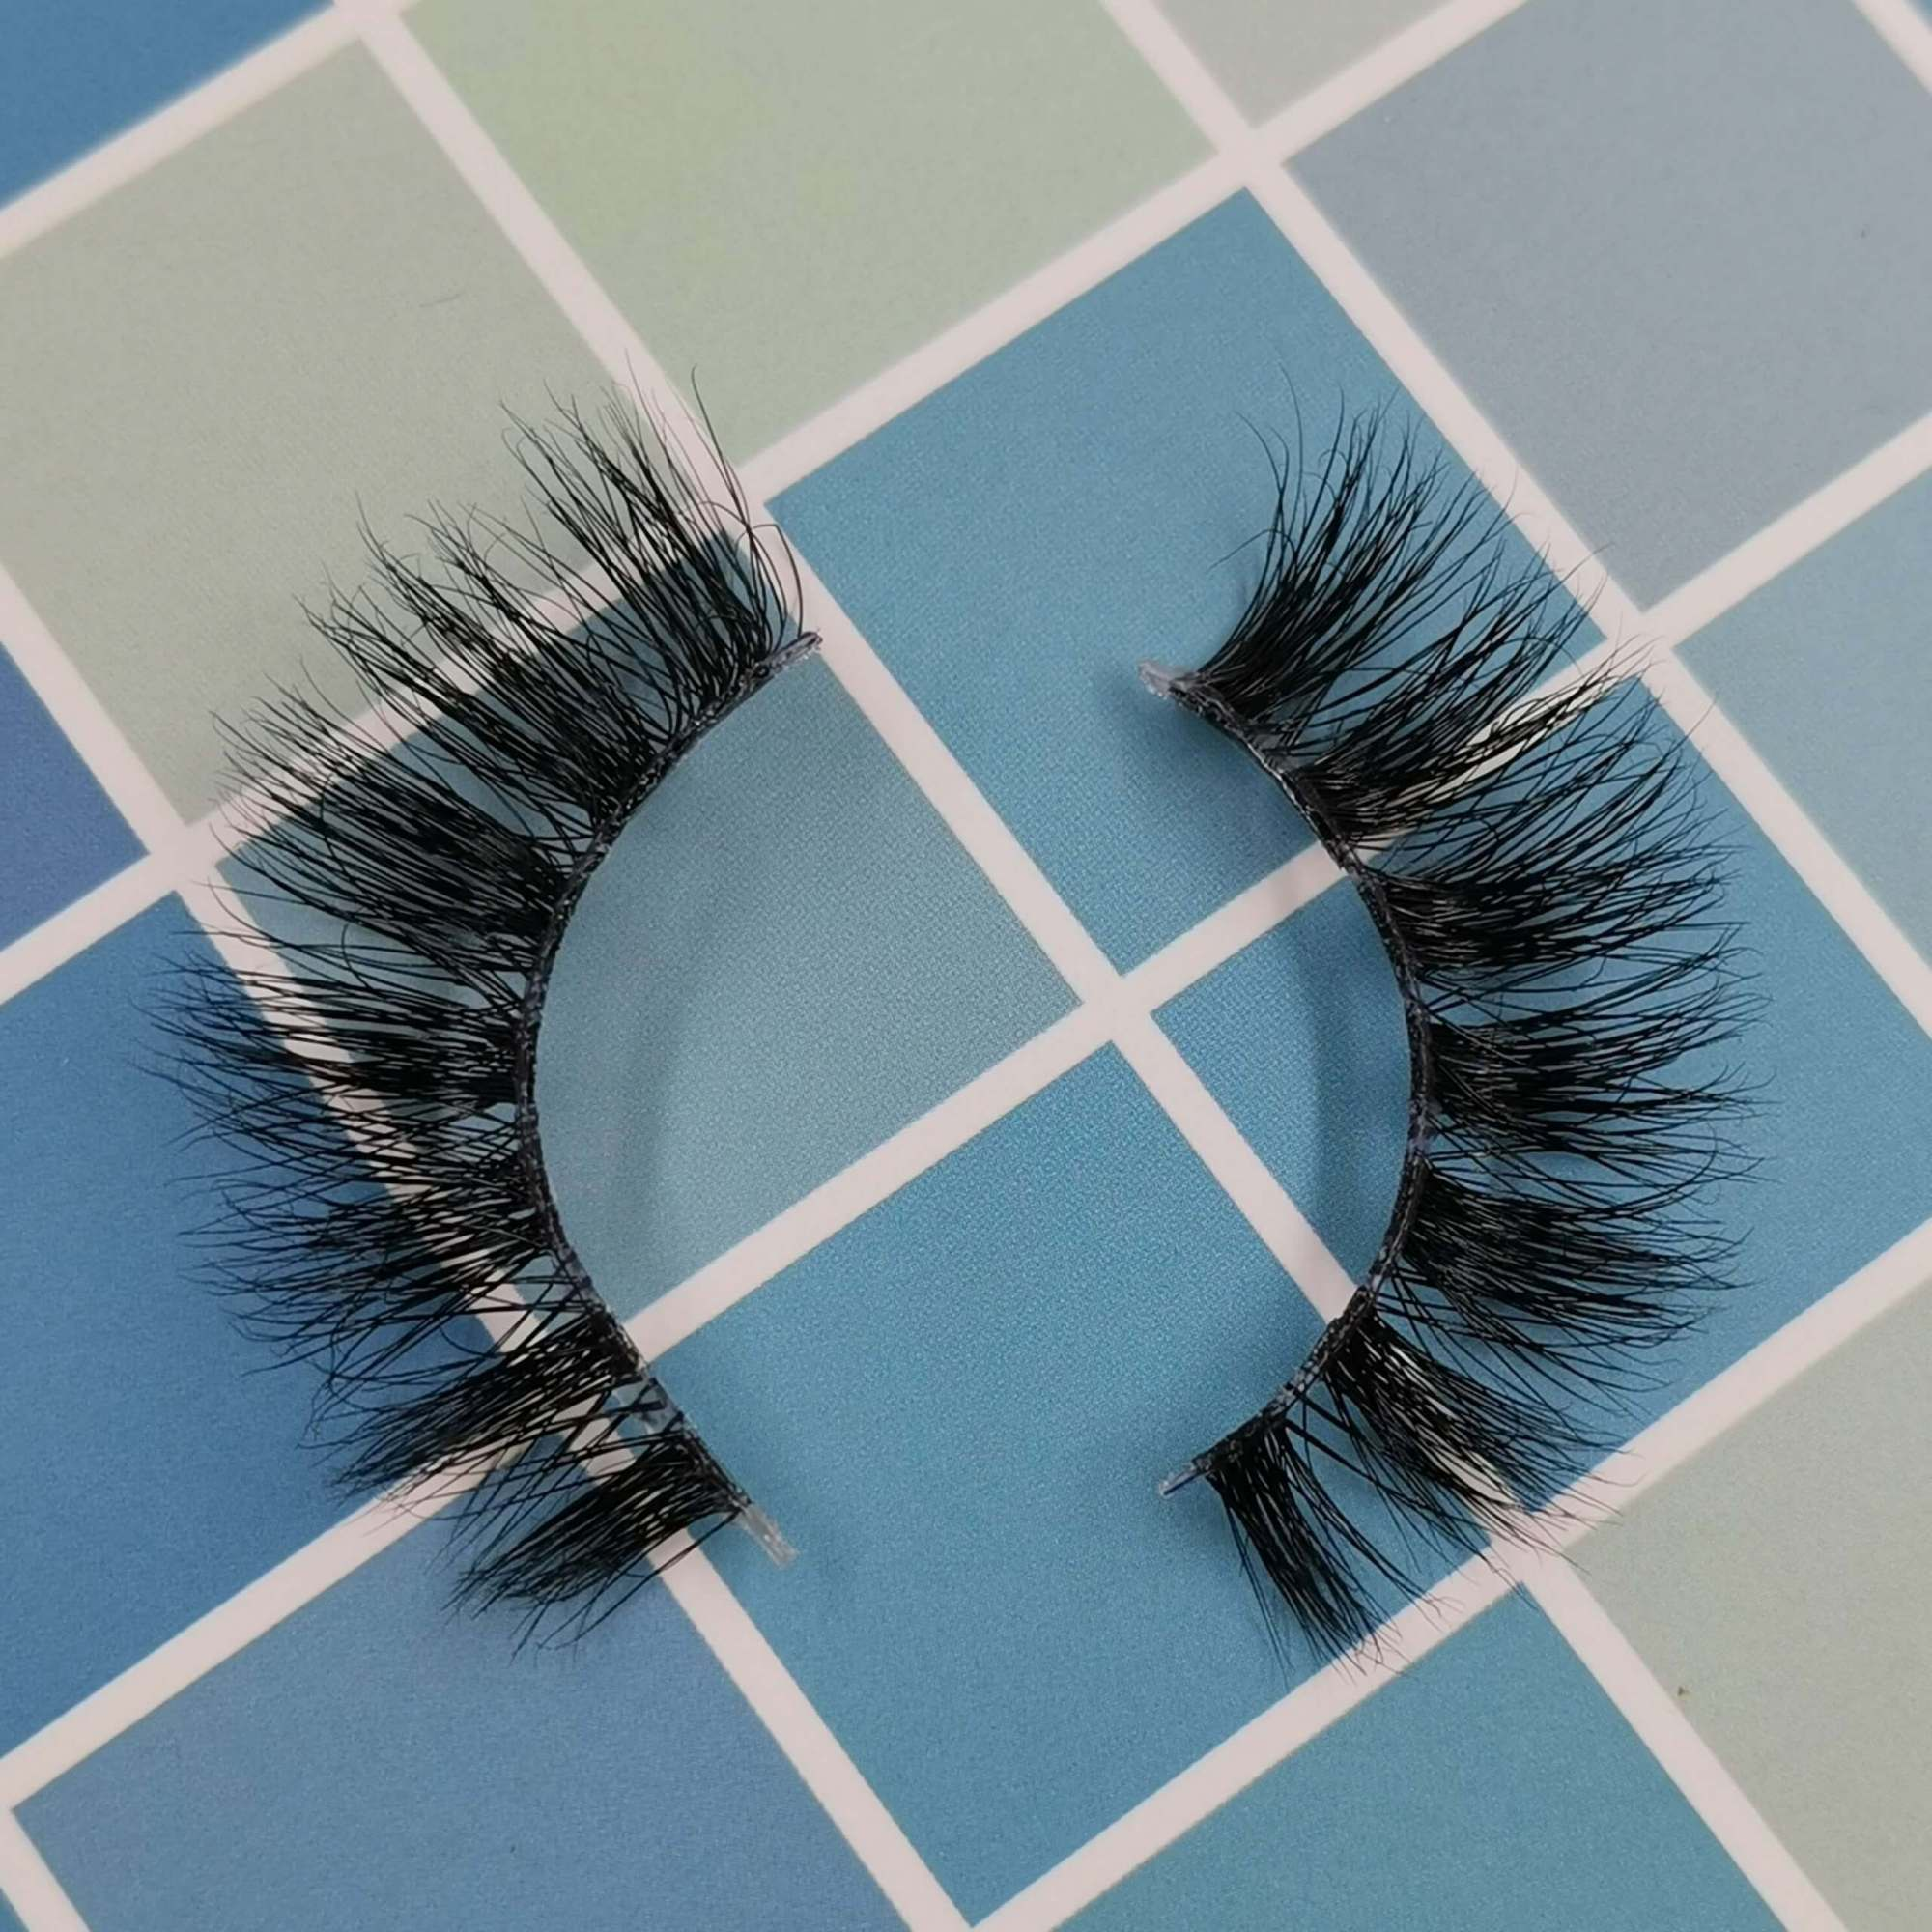 A pair of mink eyelashes for your eye shape and its model is 3T107. Trust me, ProluxuryLashes brand is the best eyelash supplier